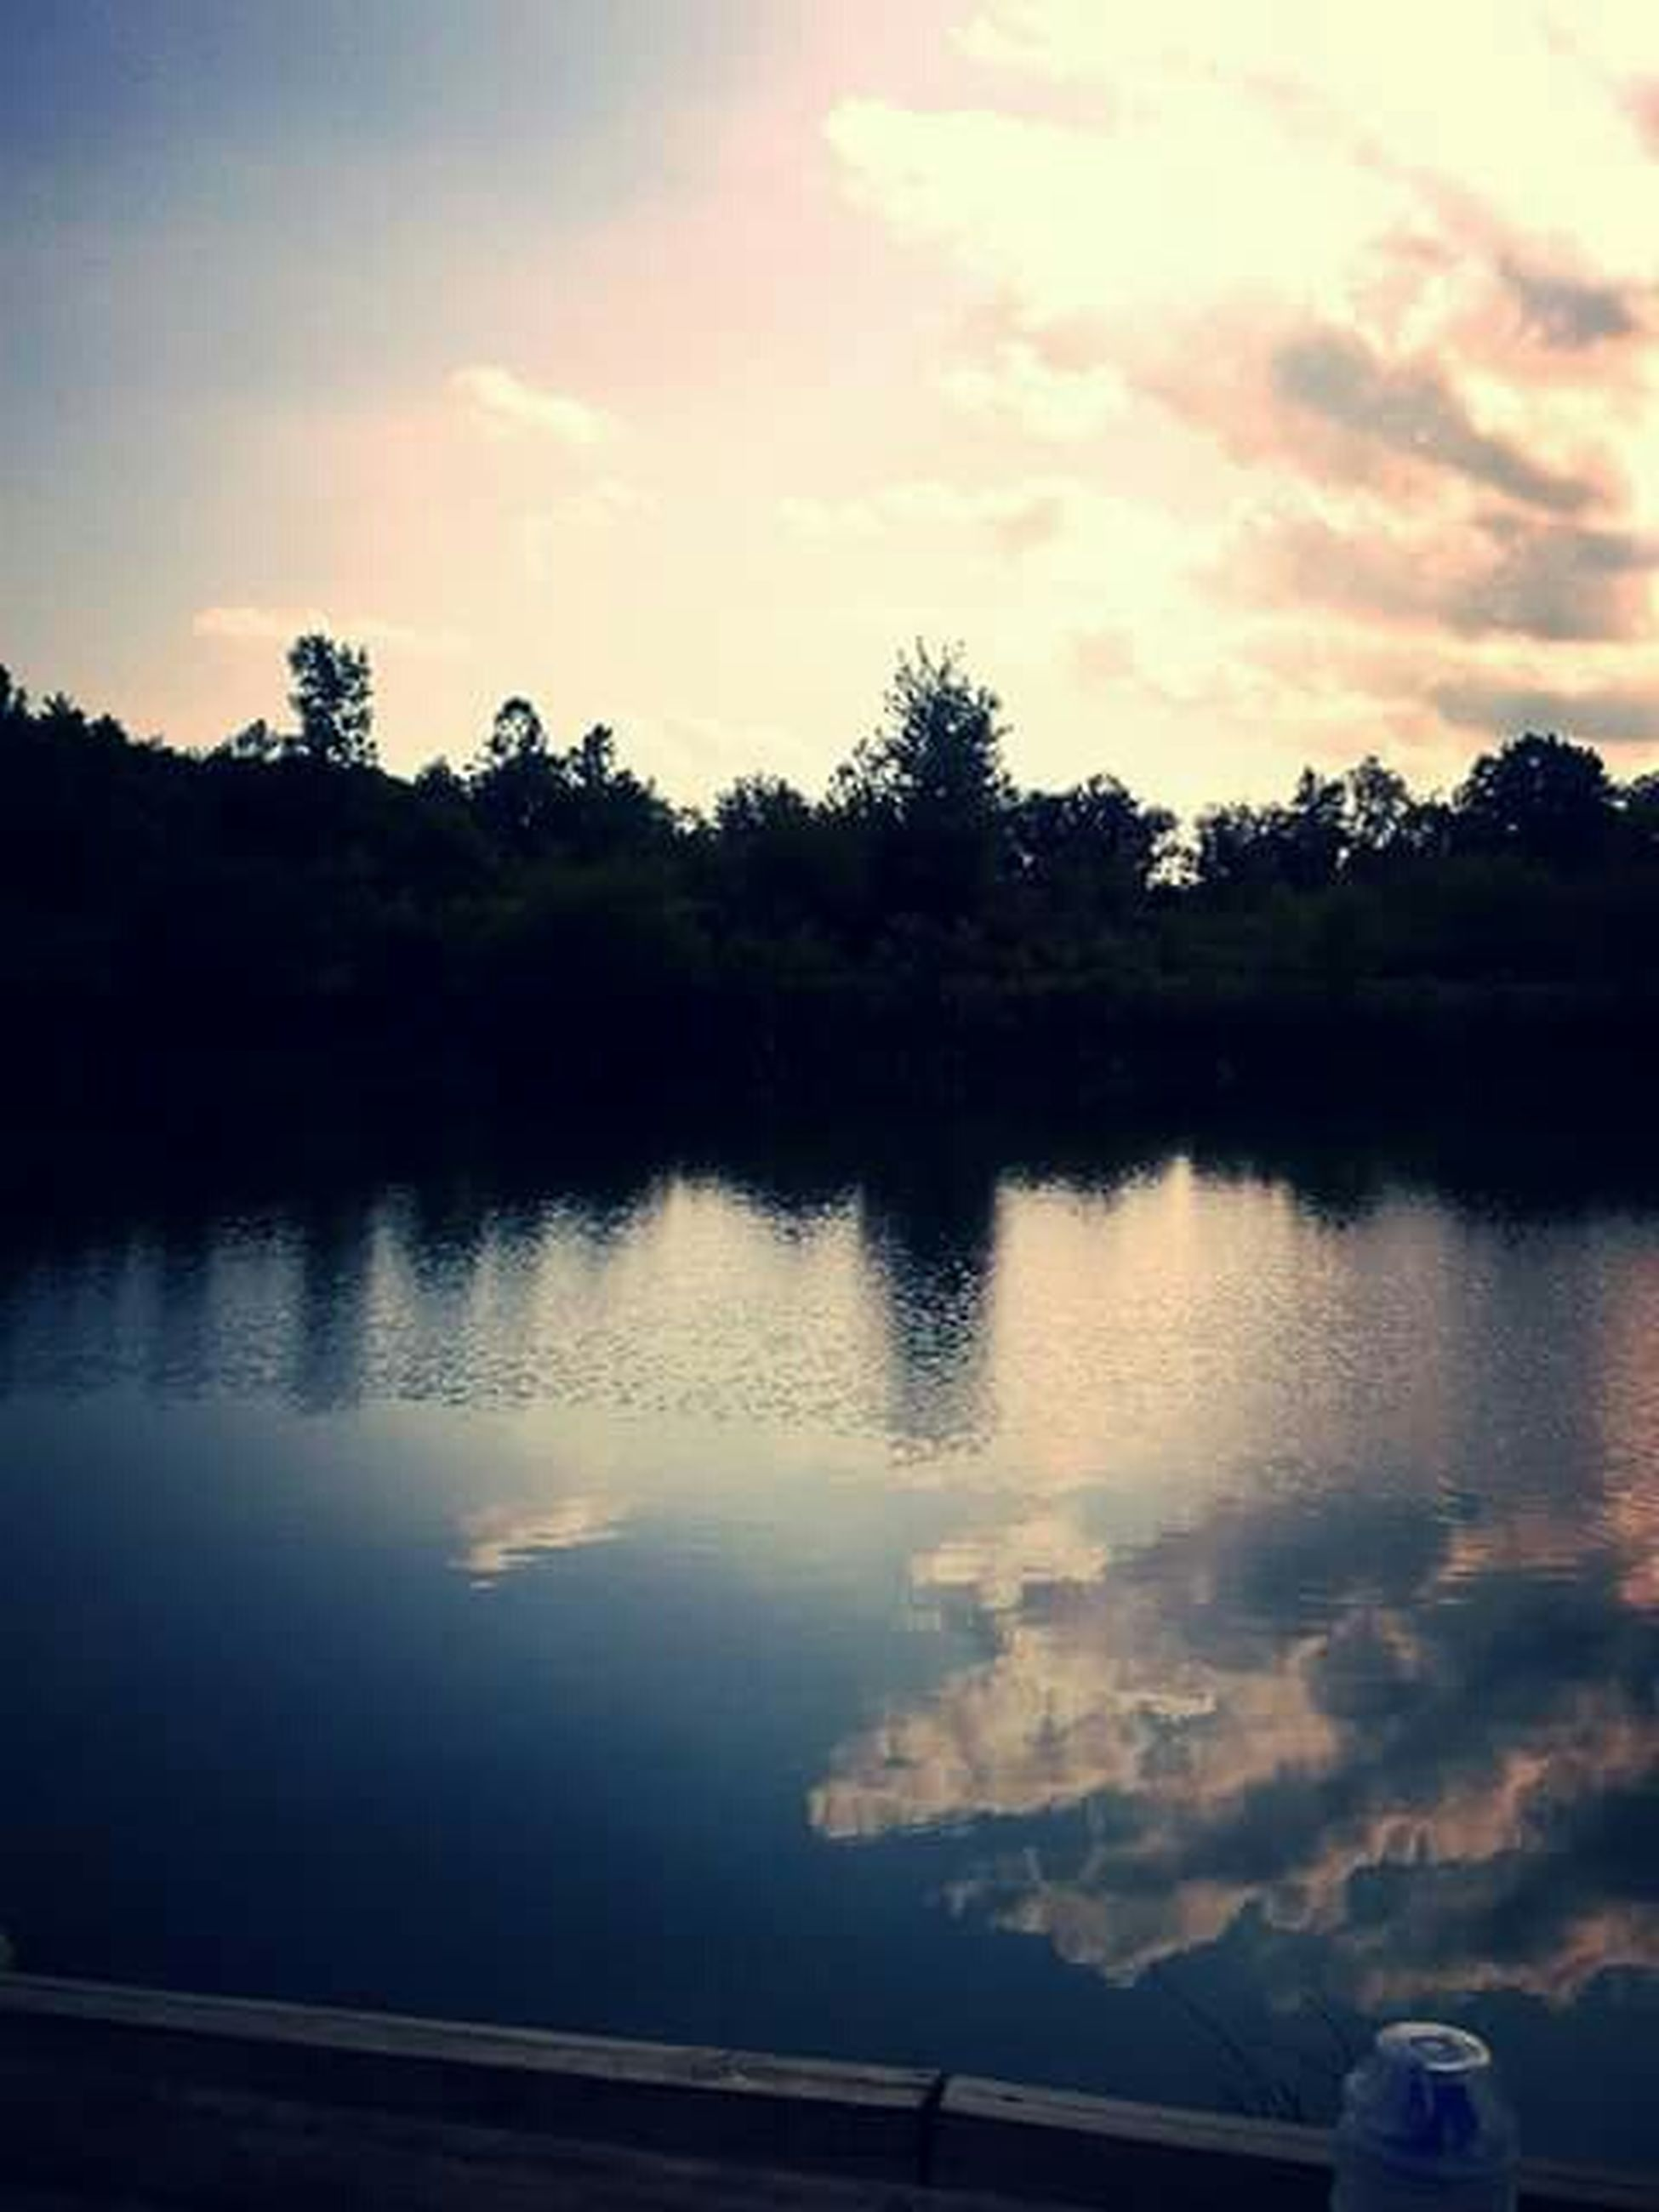 reflection, water, sunset, sky, tree, lake, silhouette, tranquil scene, tranquility, scenics, beauty in nature, cloud - sky, cloud, nature, waterfront, idyllic, outdoors, river, calm, dusk